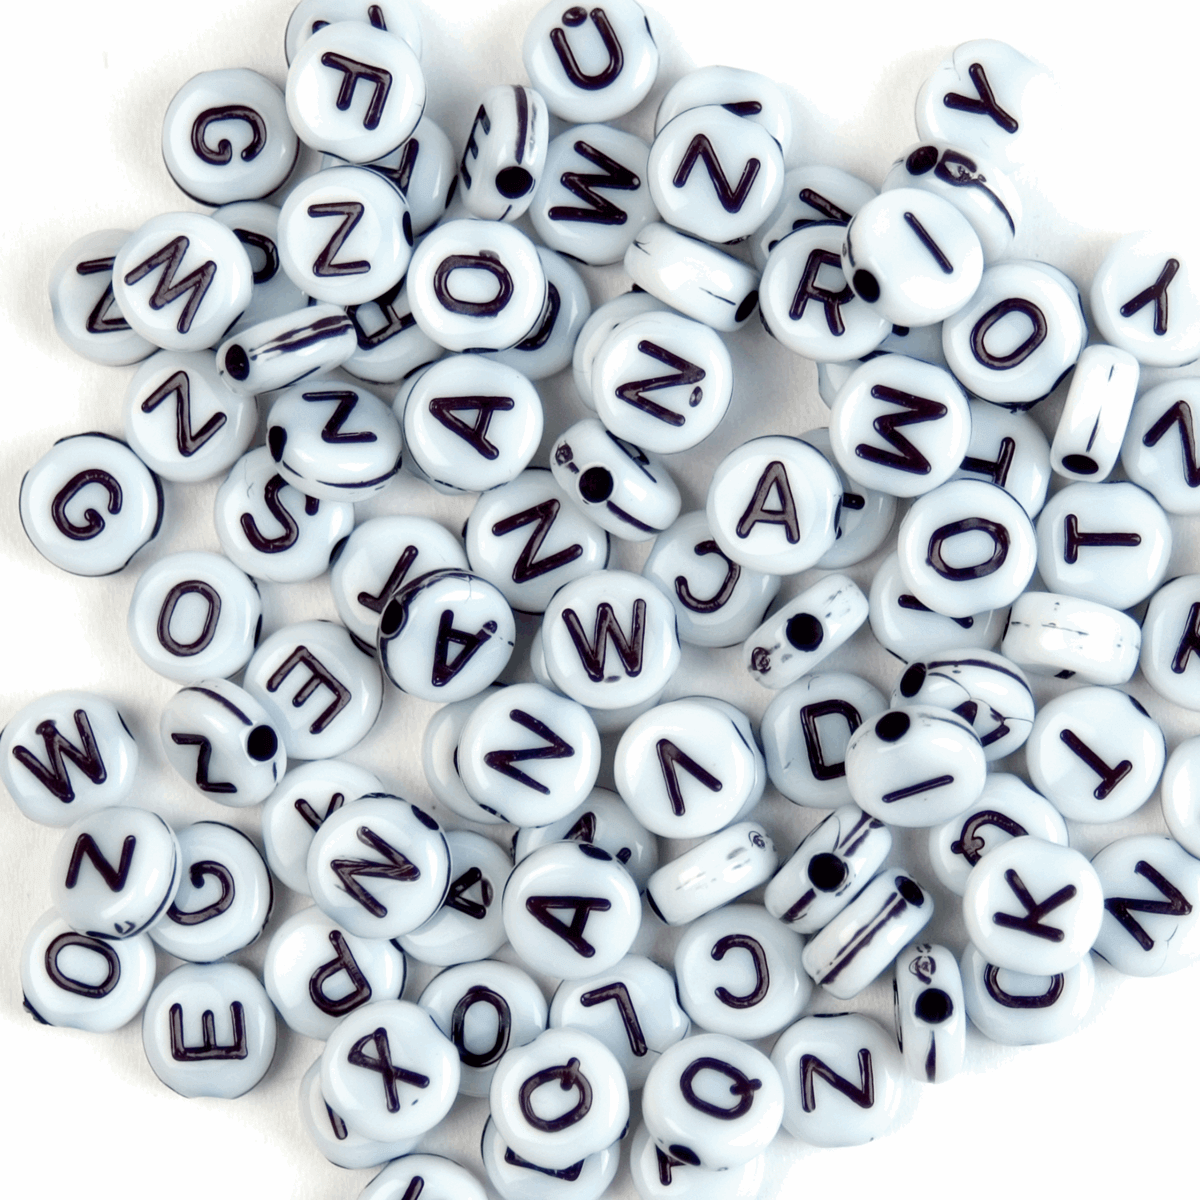 Trimits Craft Factory Plastic Black and White Alphabet Beads